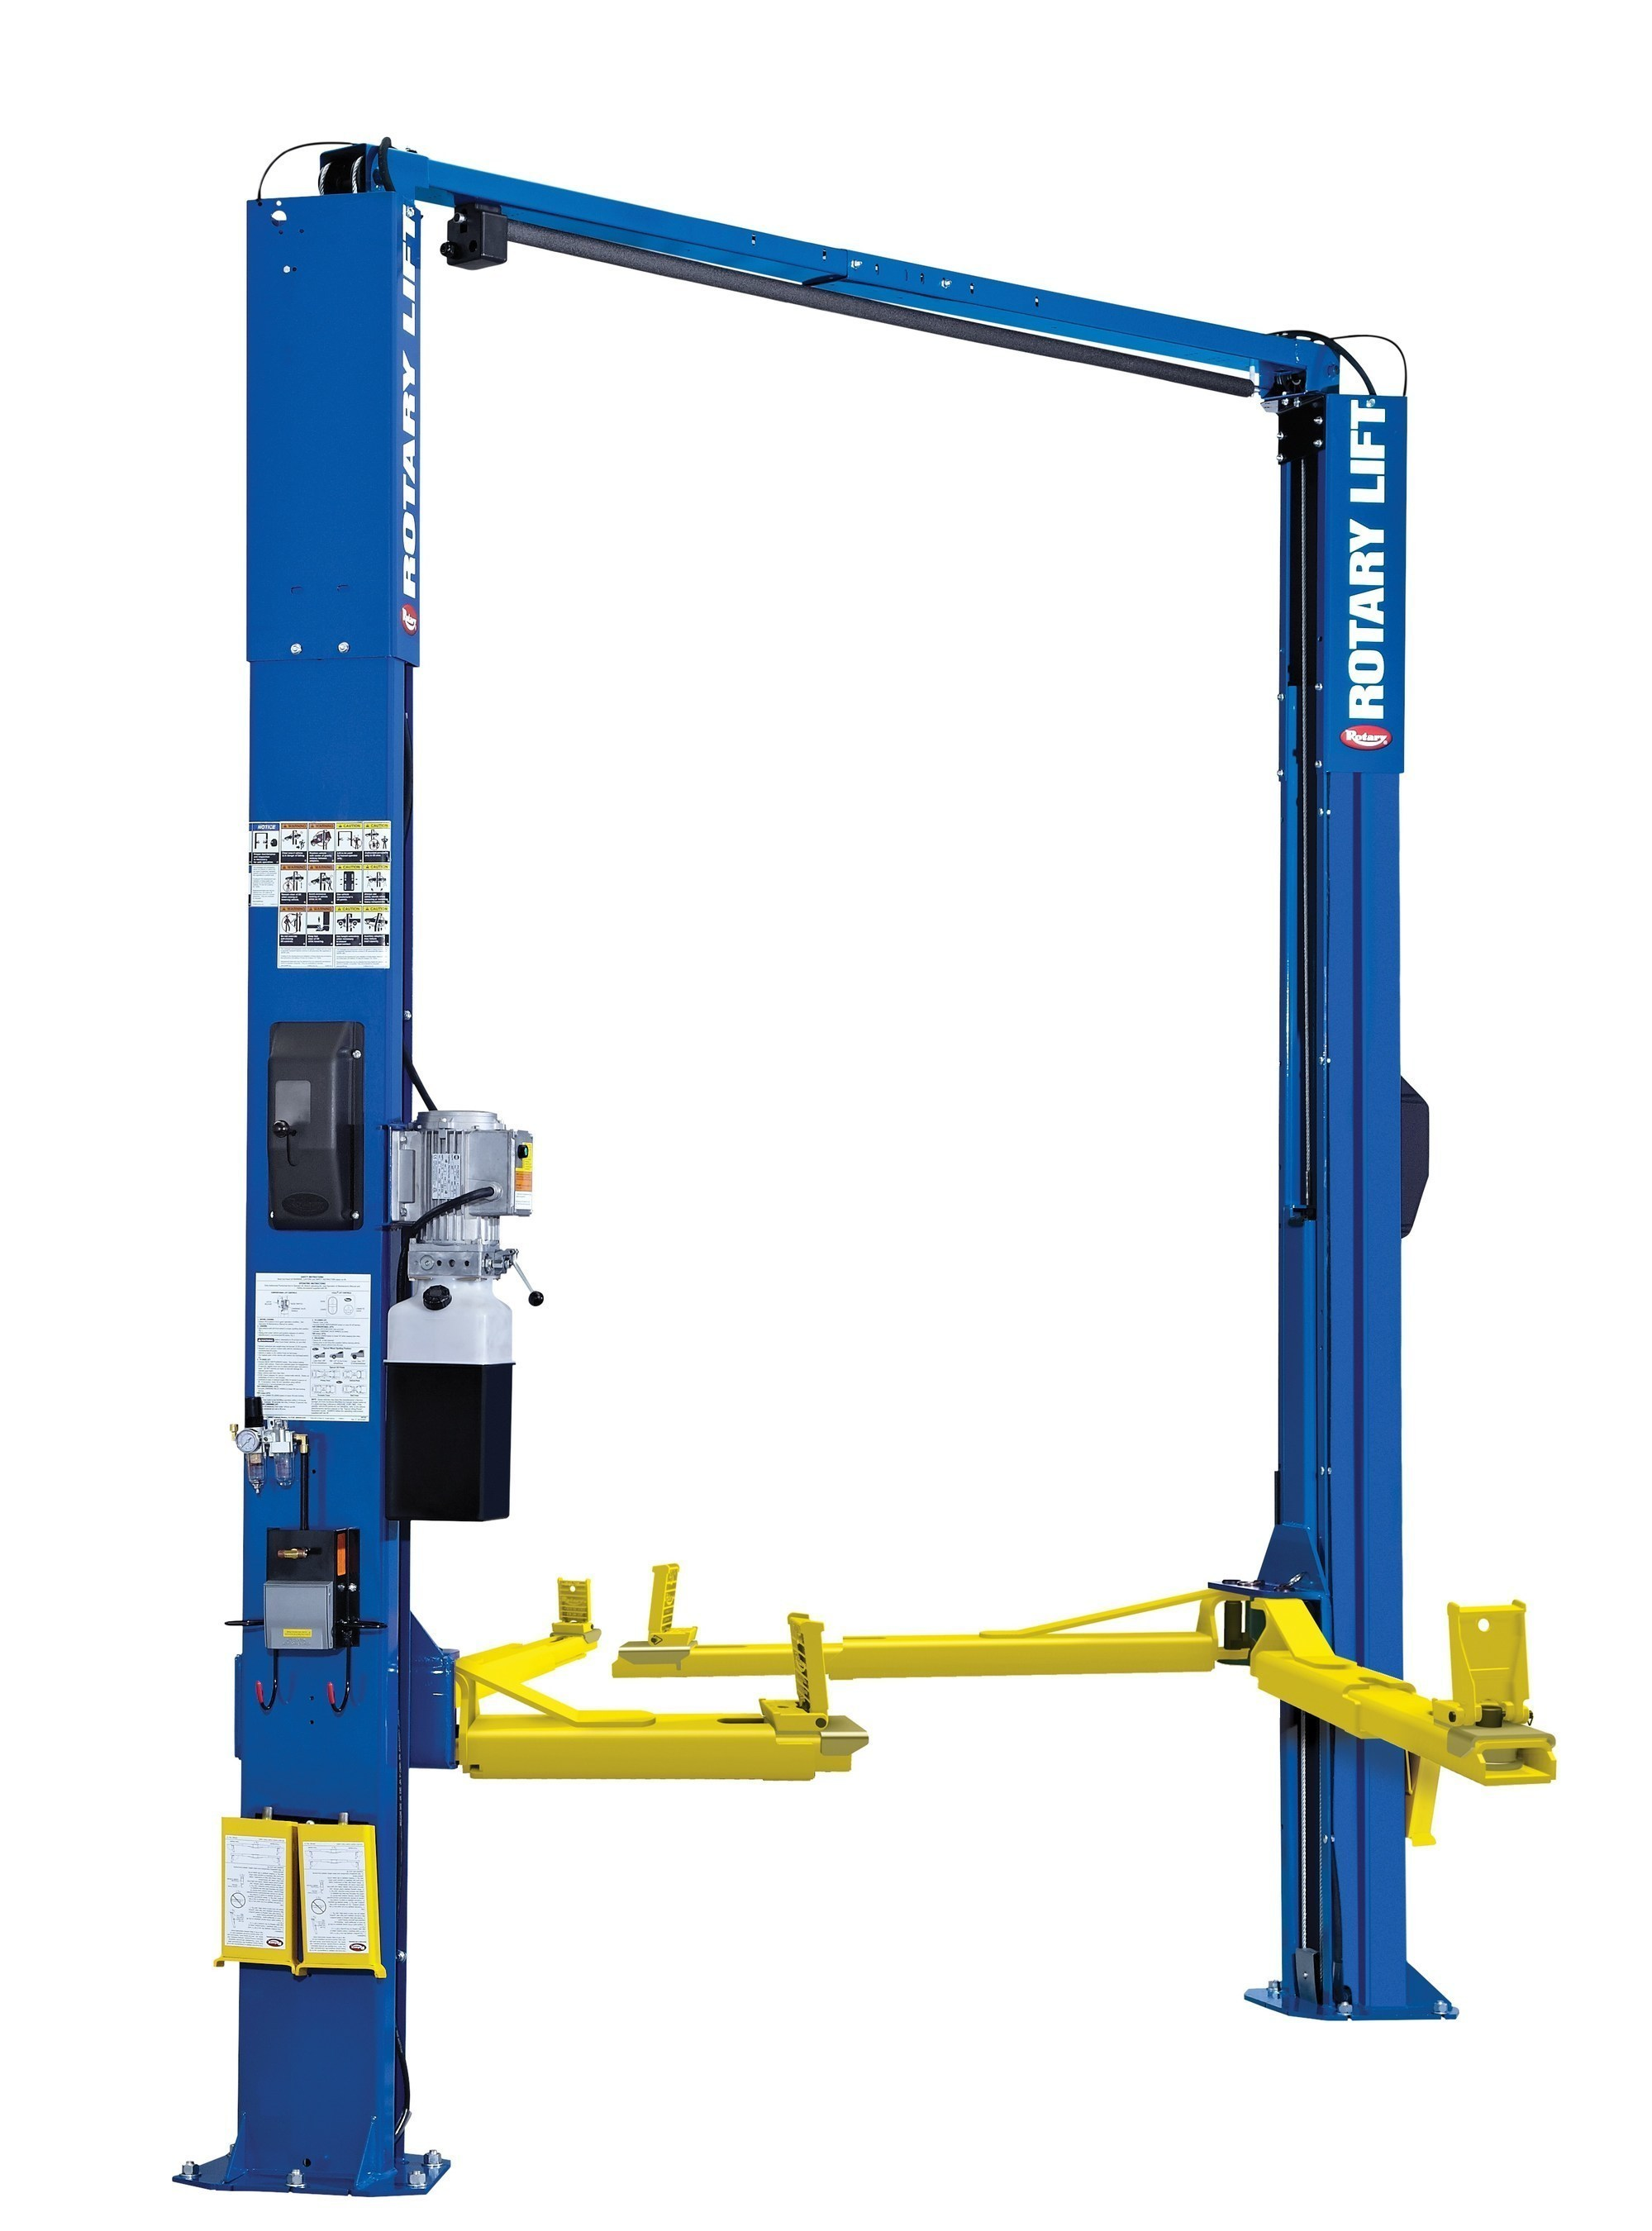 In Ground Lift Parts : Patented trio™ arms now standard on rotary lift spoa two